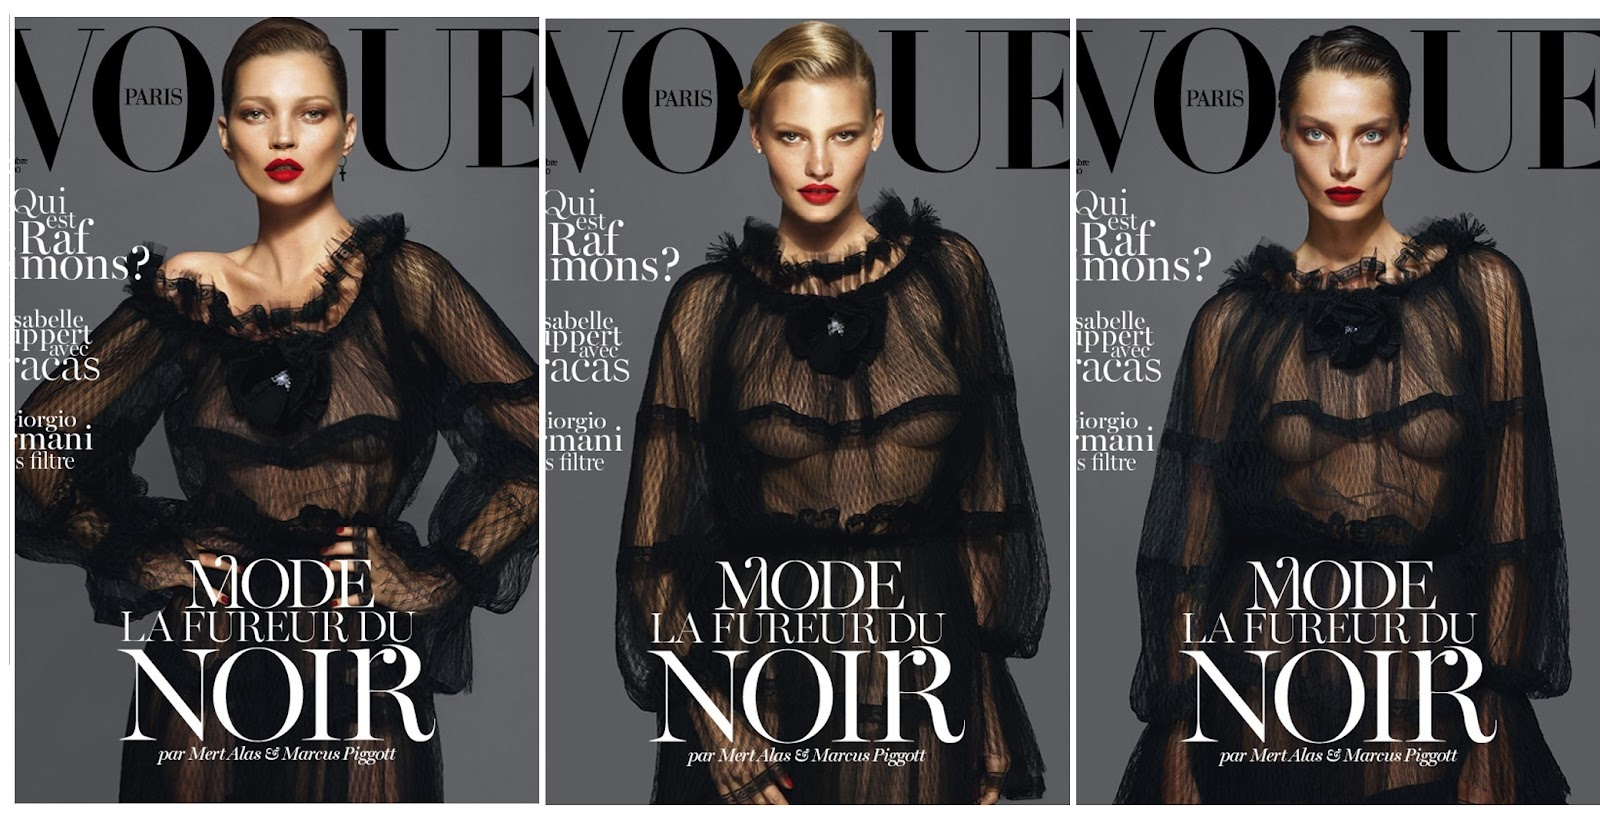 vogue paris cover September